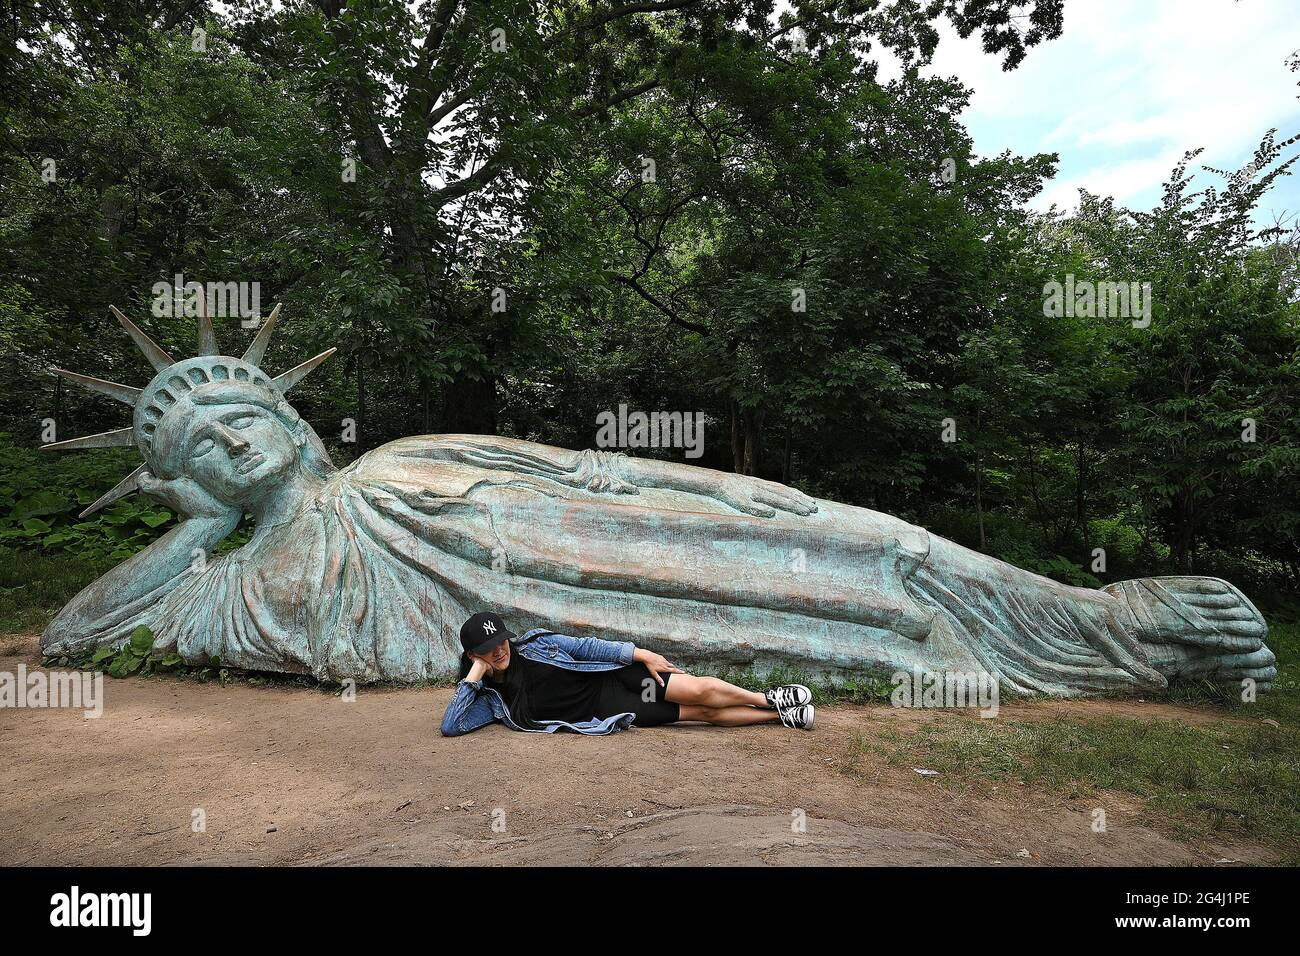 """New York, USA. 21st June, 2021. Iveth Manjarrez adopts the same pose as """"Reclining Liberty"""" for a pictures in front of the 25 foot long Statue of Liberty replica sculptured by artist Zaq Landsberg, in Morningside Park, in New York, NY, June 21, 2021. (Photo by Anthony Behar/Sipa USA) Credit: Sipa USA/Alamy Live News Stock Photo"""